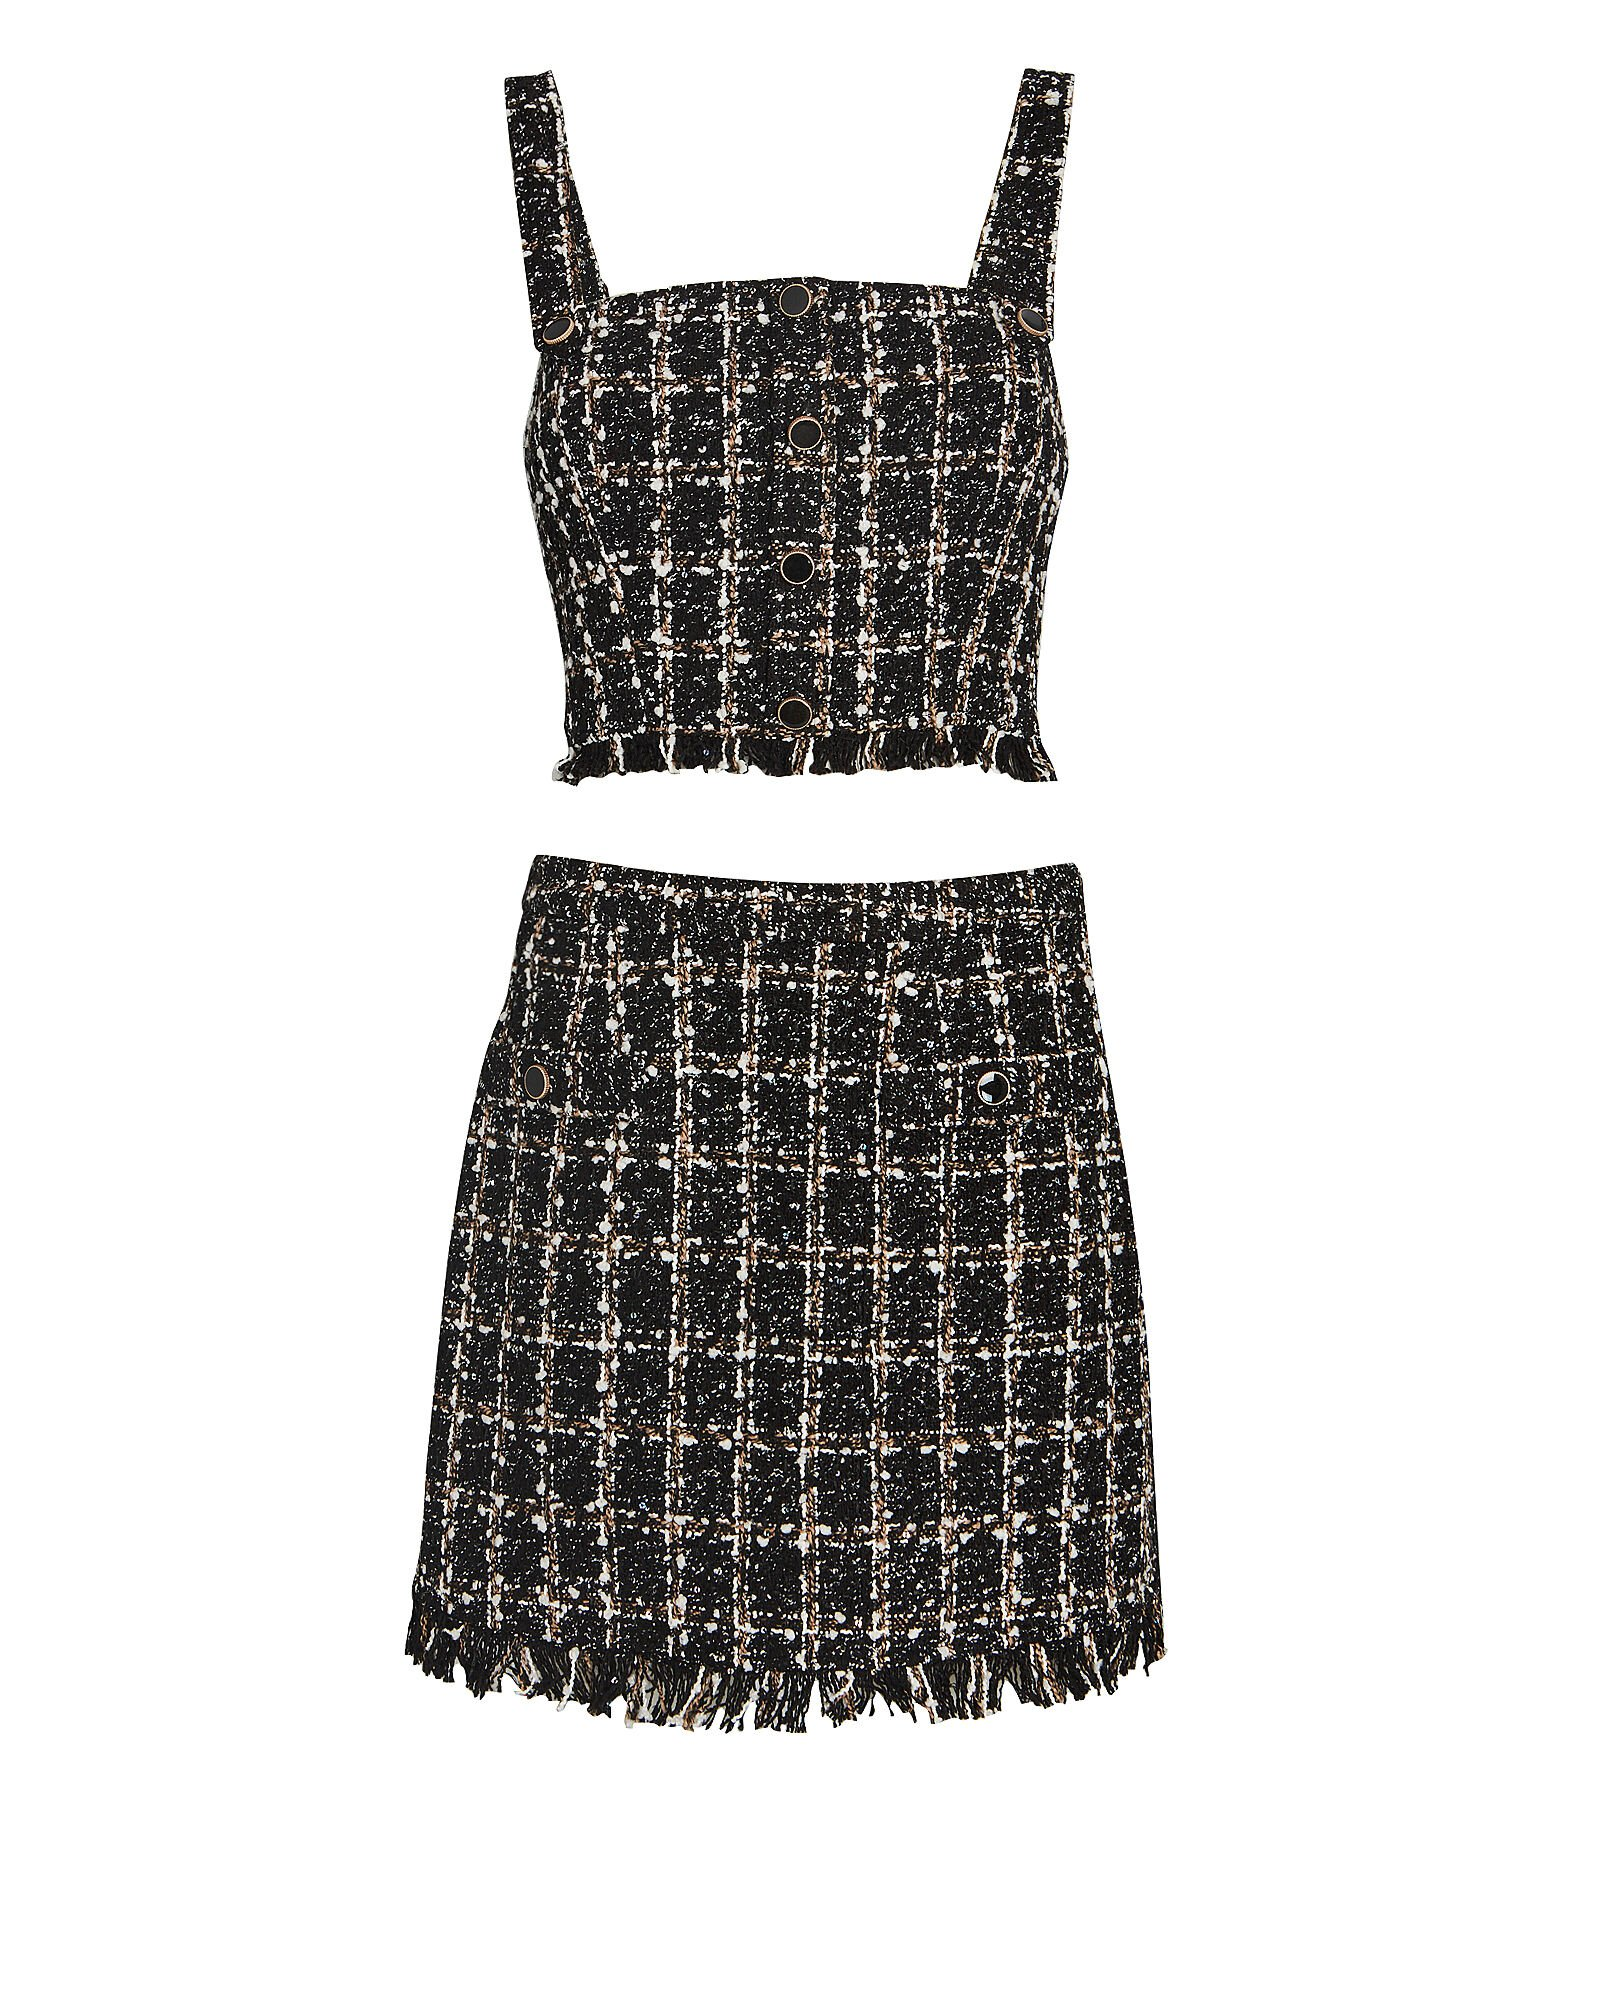 Garaham Tweed Two-Piece Set, BLACK/IVORY/BROWN, hi-res